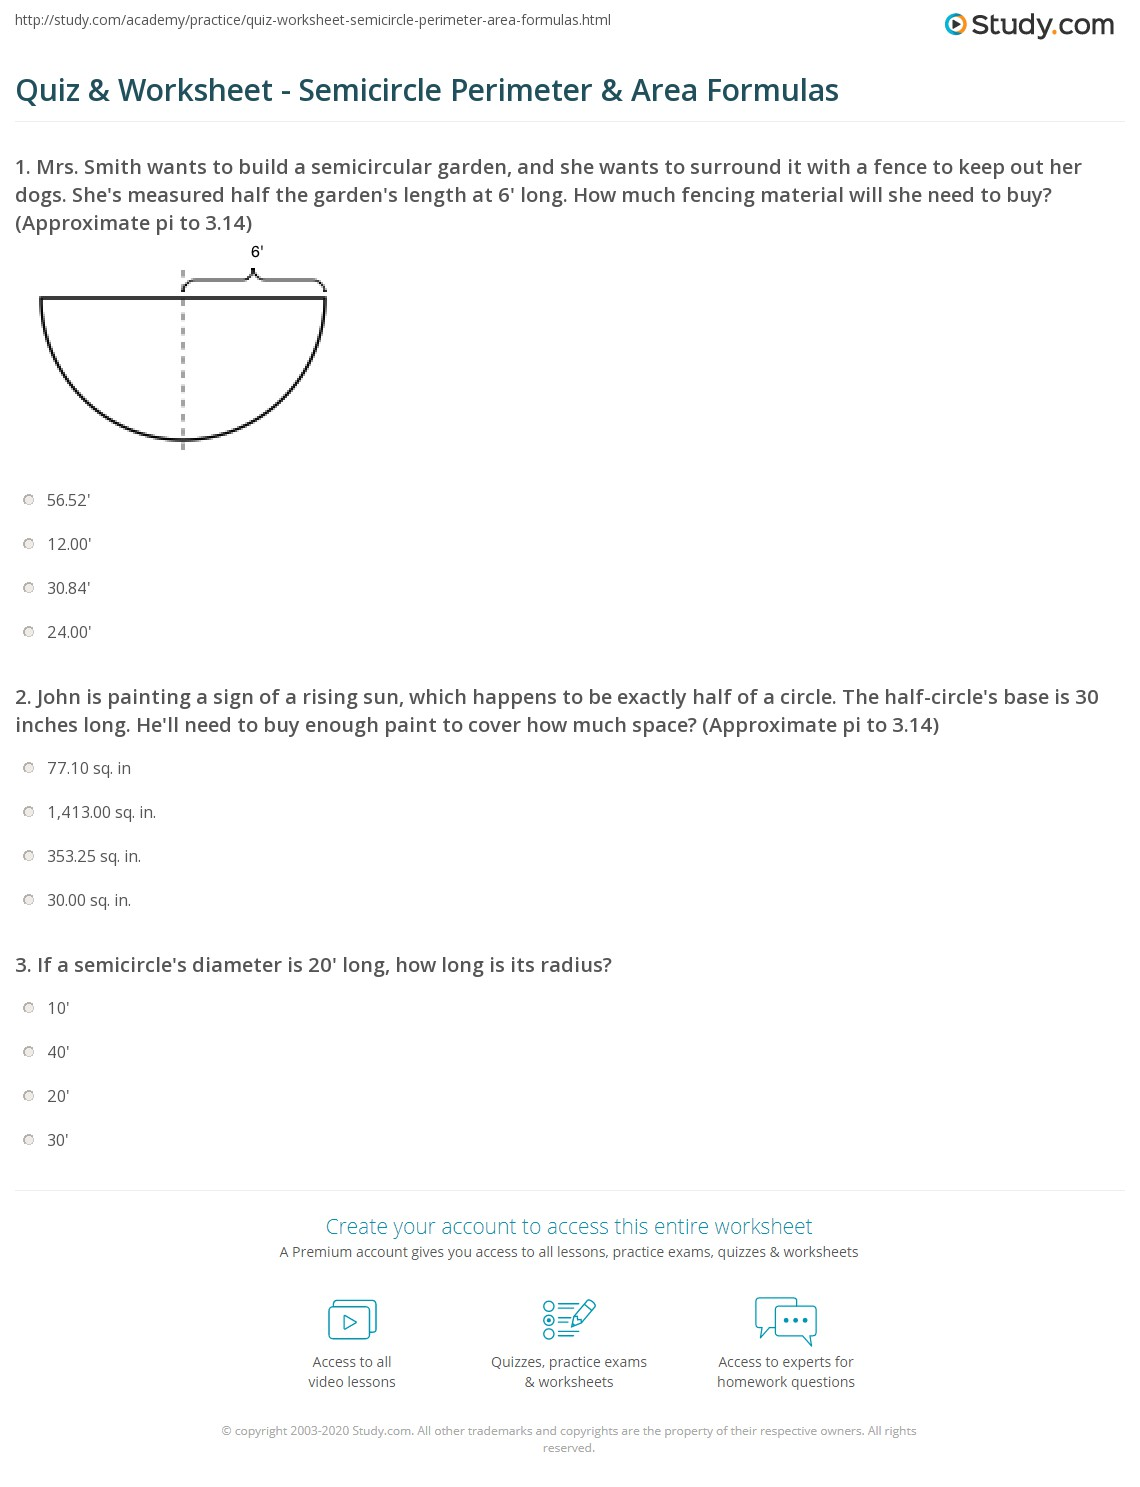 Worksheets Area And Circumference Of A Circle Worksheet quiz worksheet semicircle perimeter area formulas study com john is painting a sign of rising sun which happens to be exactly half circle the circles base 30 inches long